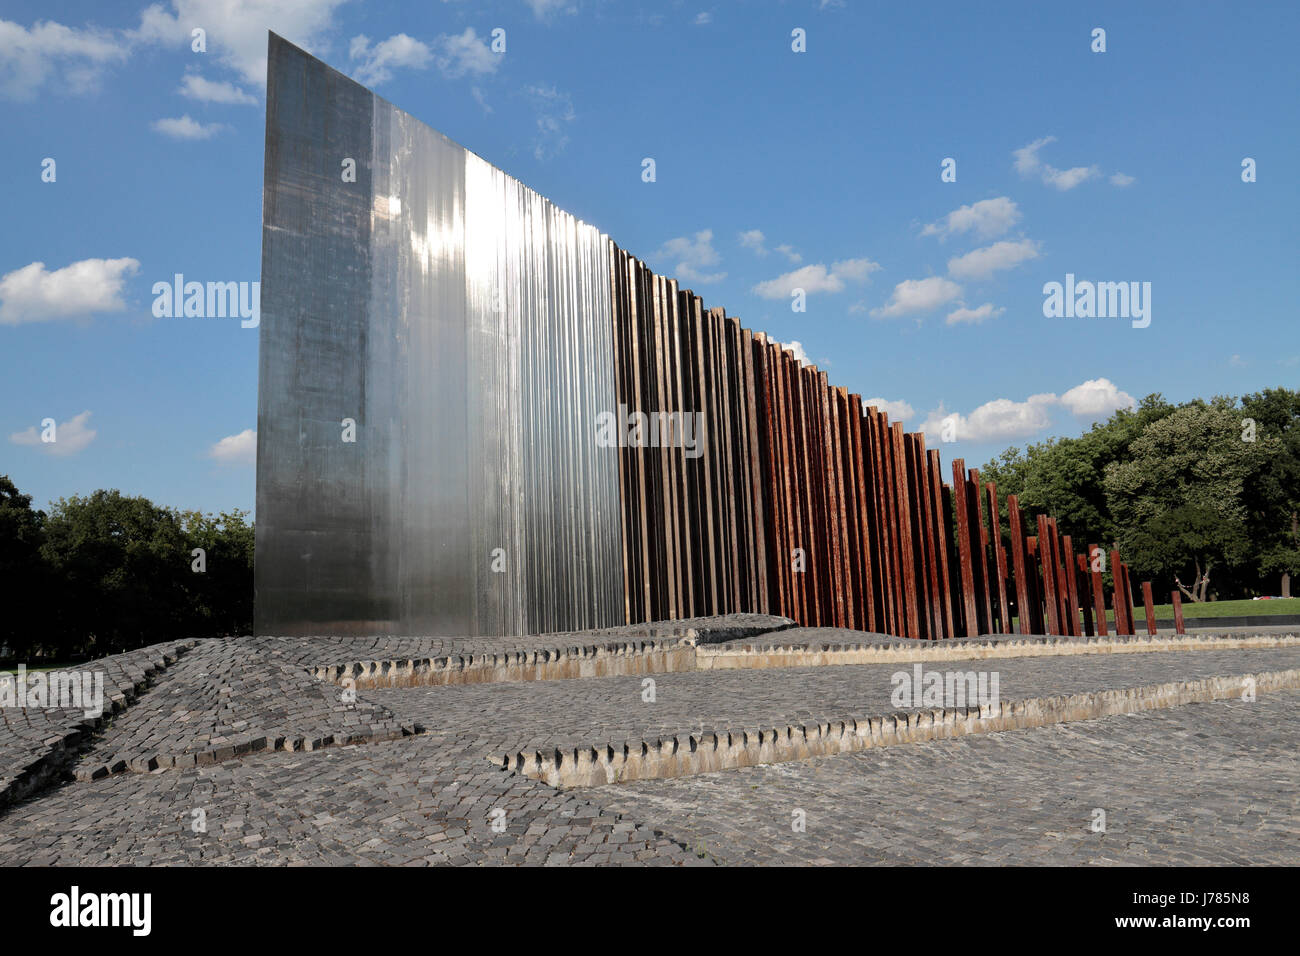 Memorial to the 1956 Hungarian Revolution and War of Independence, Budapest, Hungary. - Stock Image